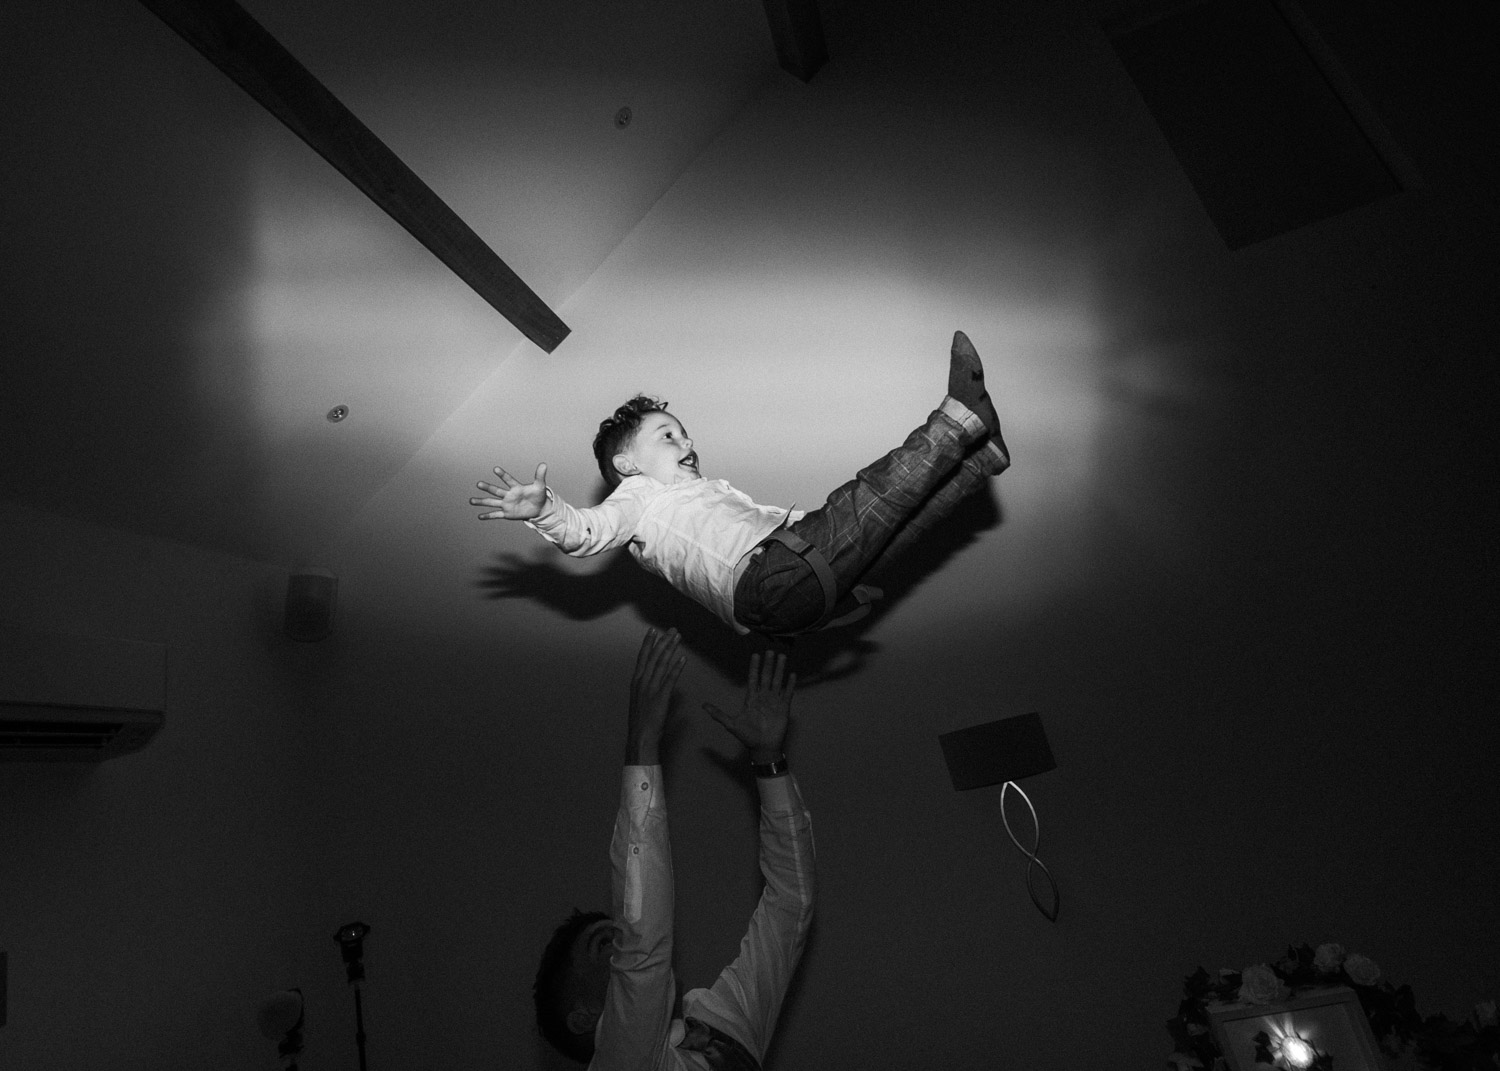 boy being thrown into the air